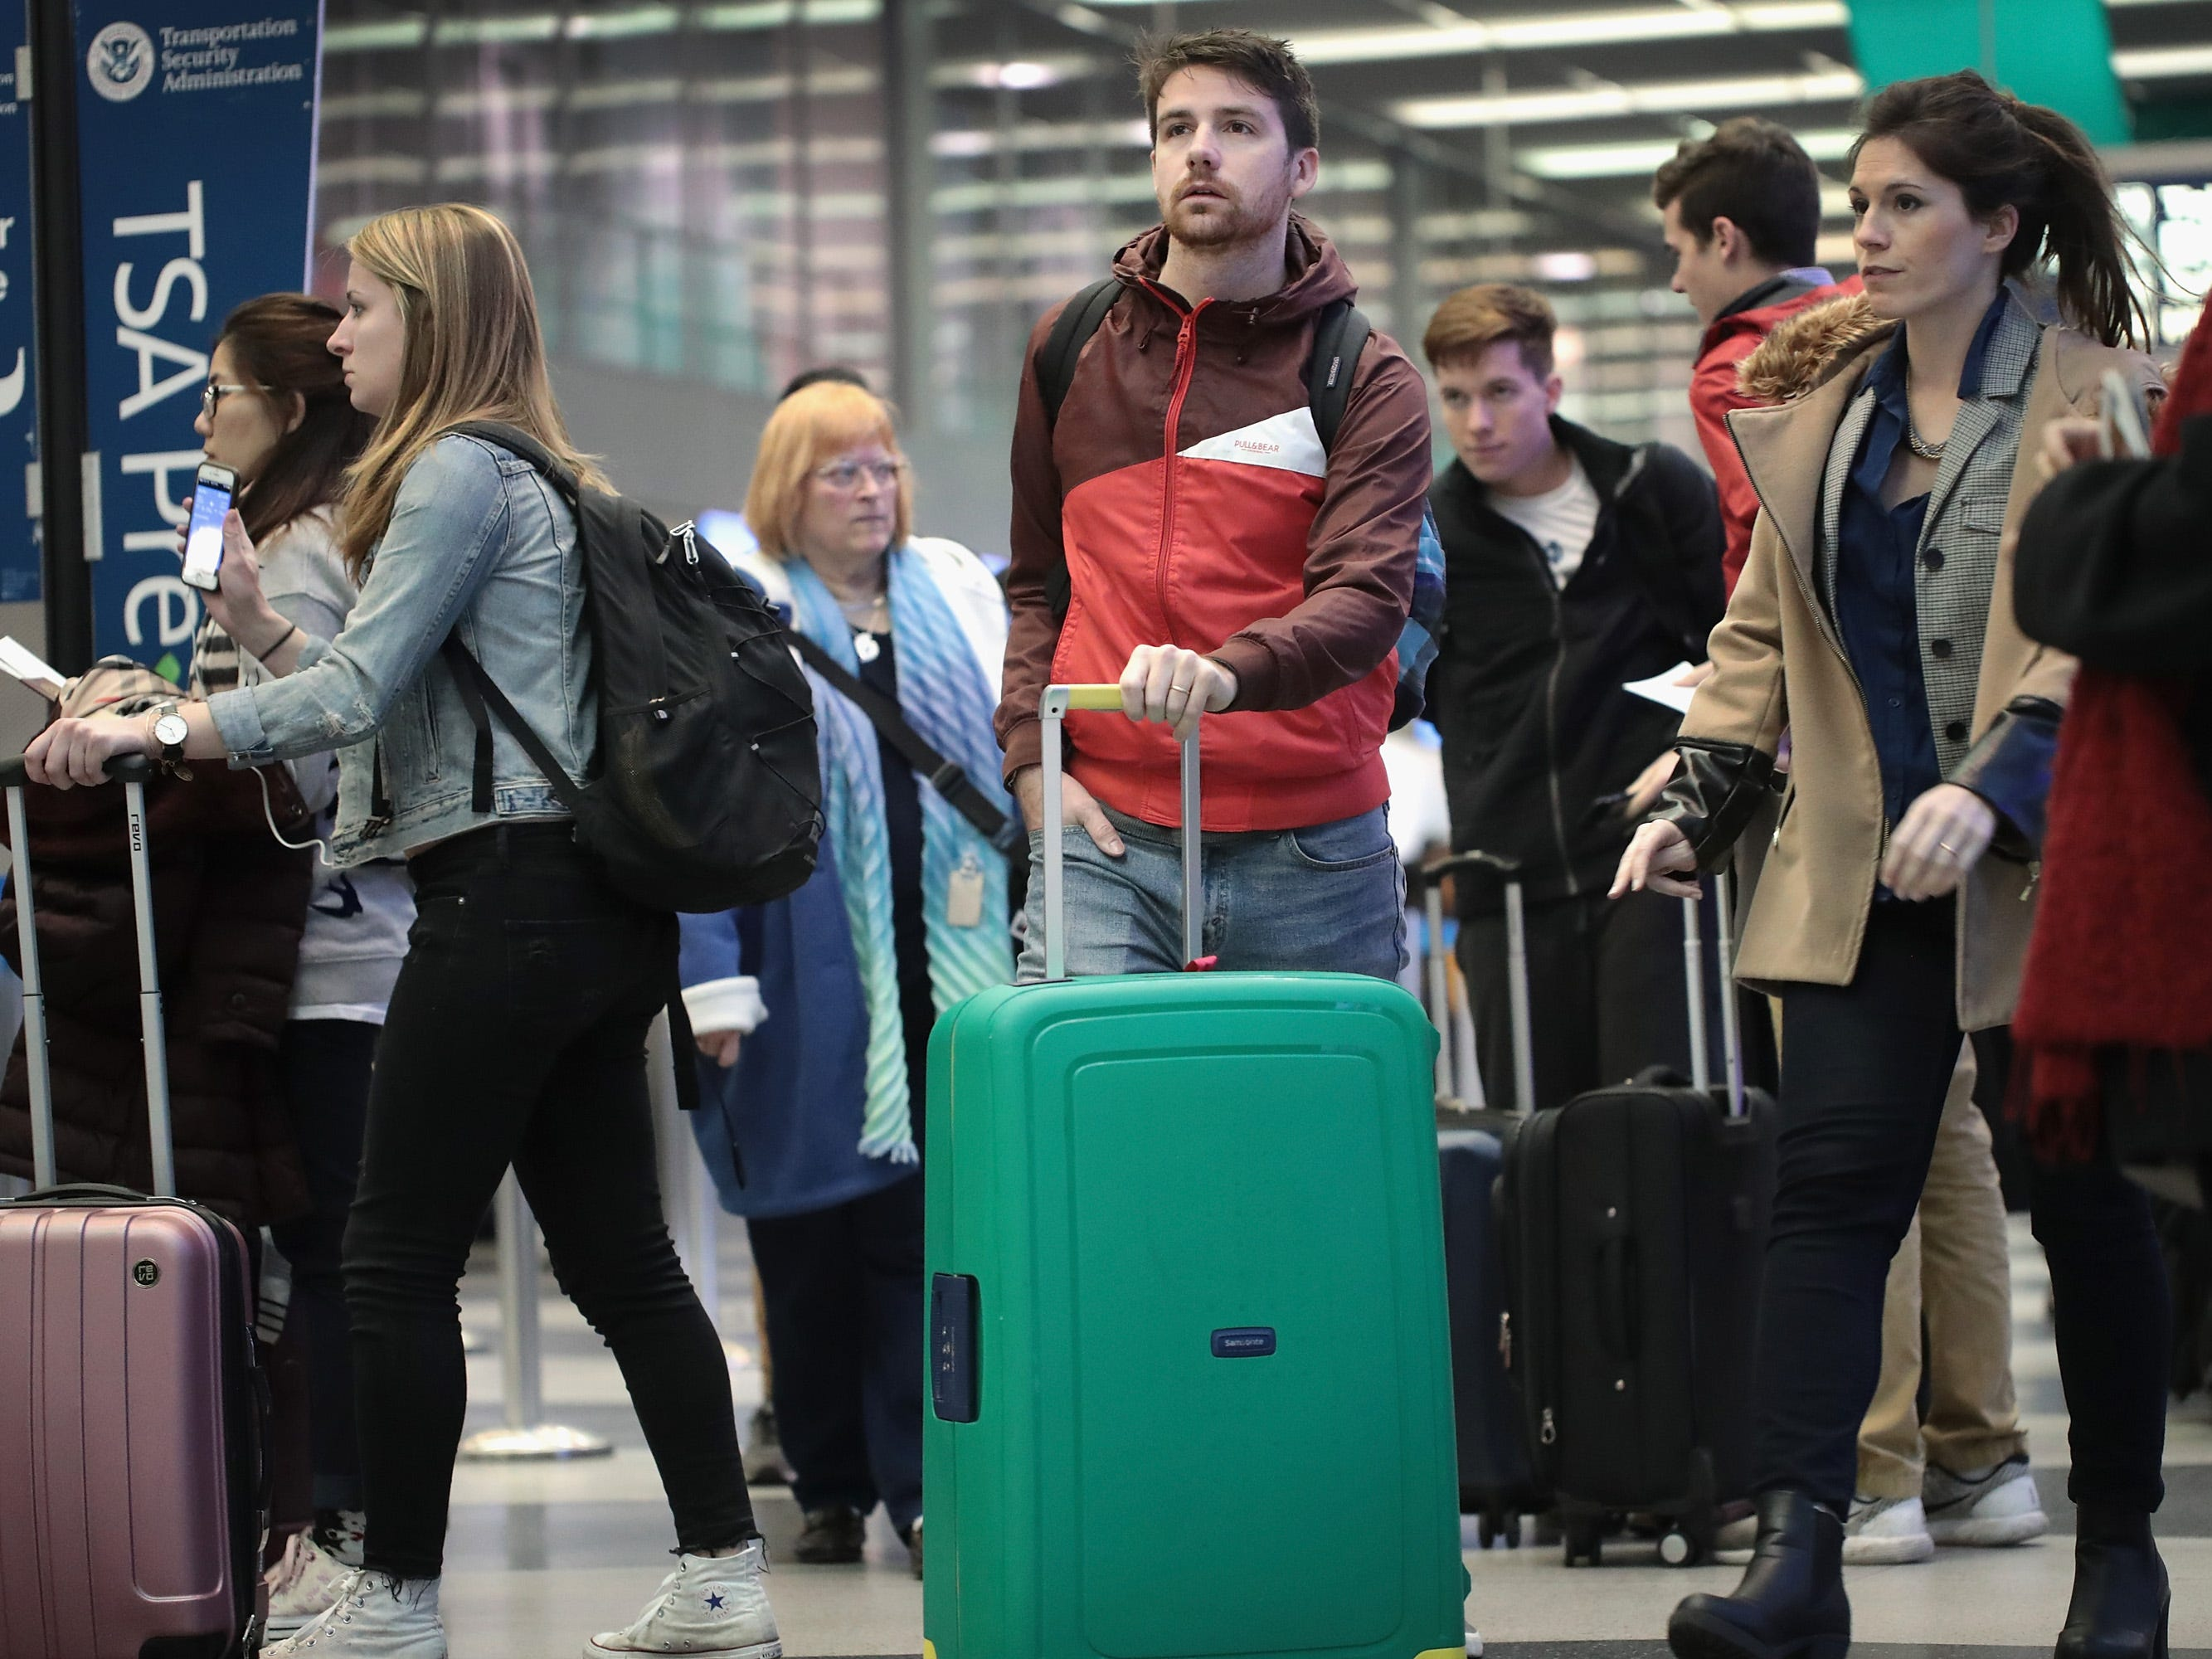 Growing consensus: Thanksgiving will be busiest ever for air travel